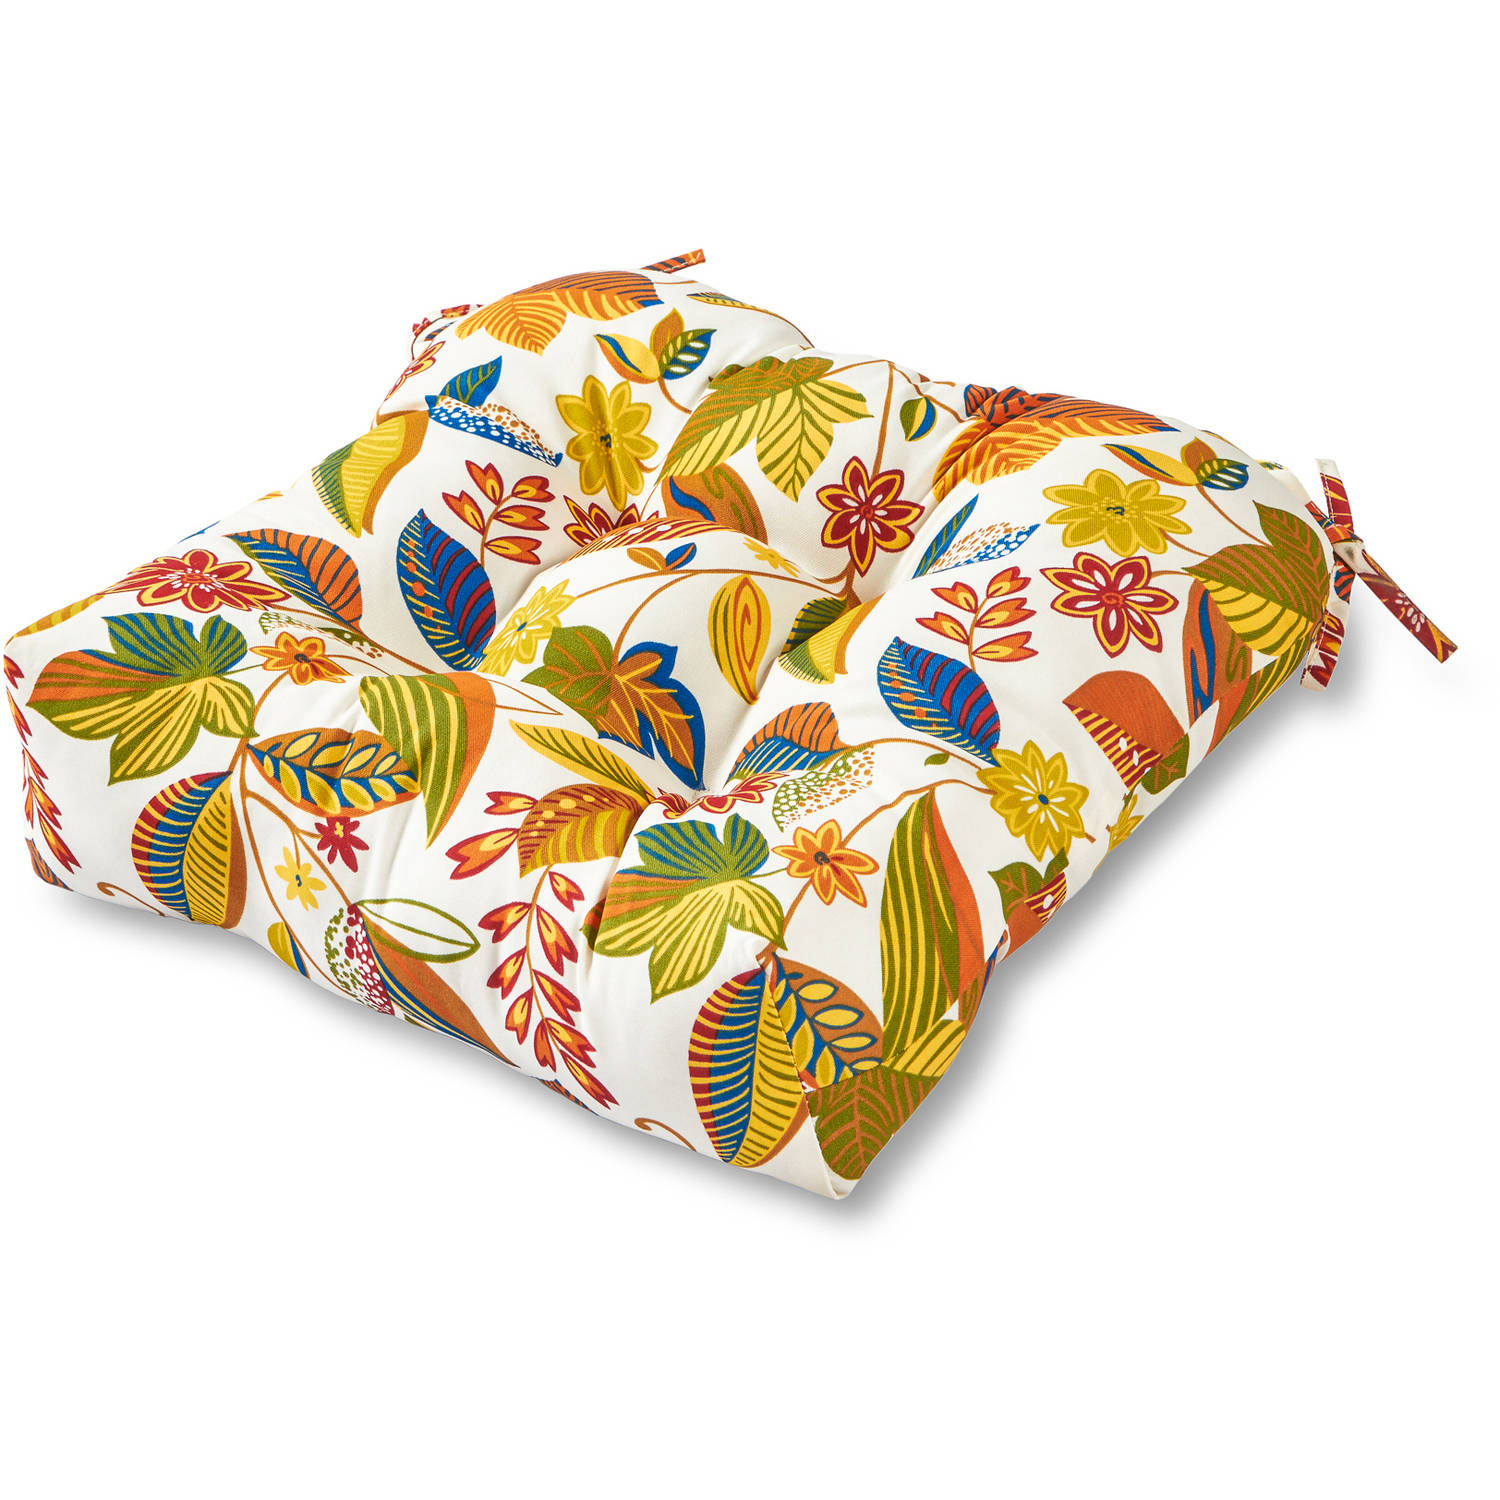 "Greendale Home Fashions 20"" Outdoor Chair Cushion, Esprit"